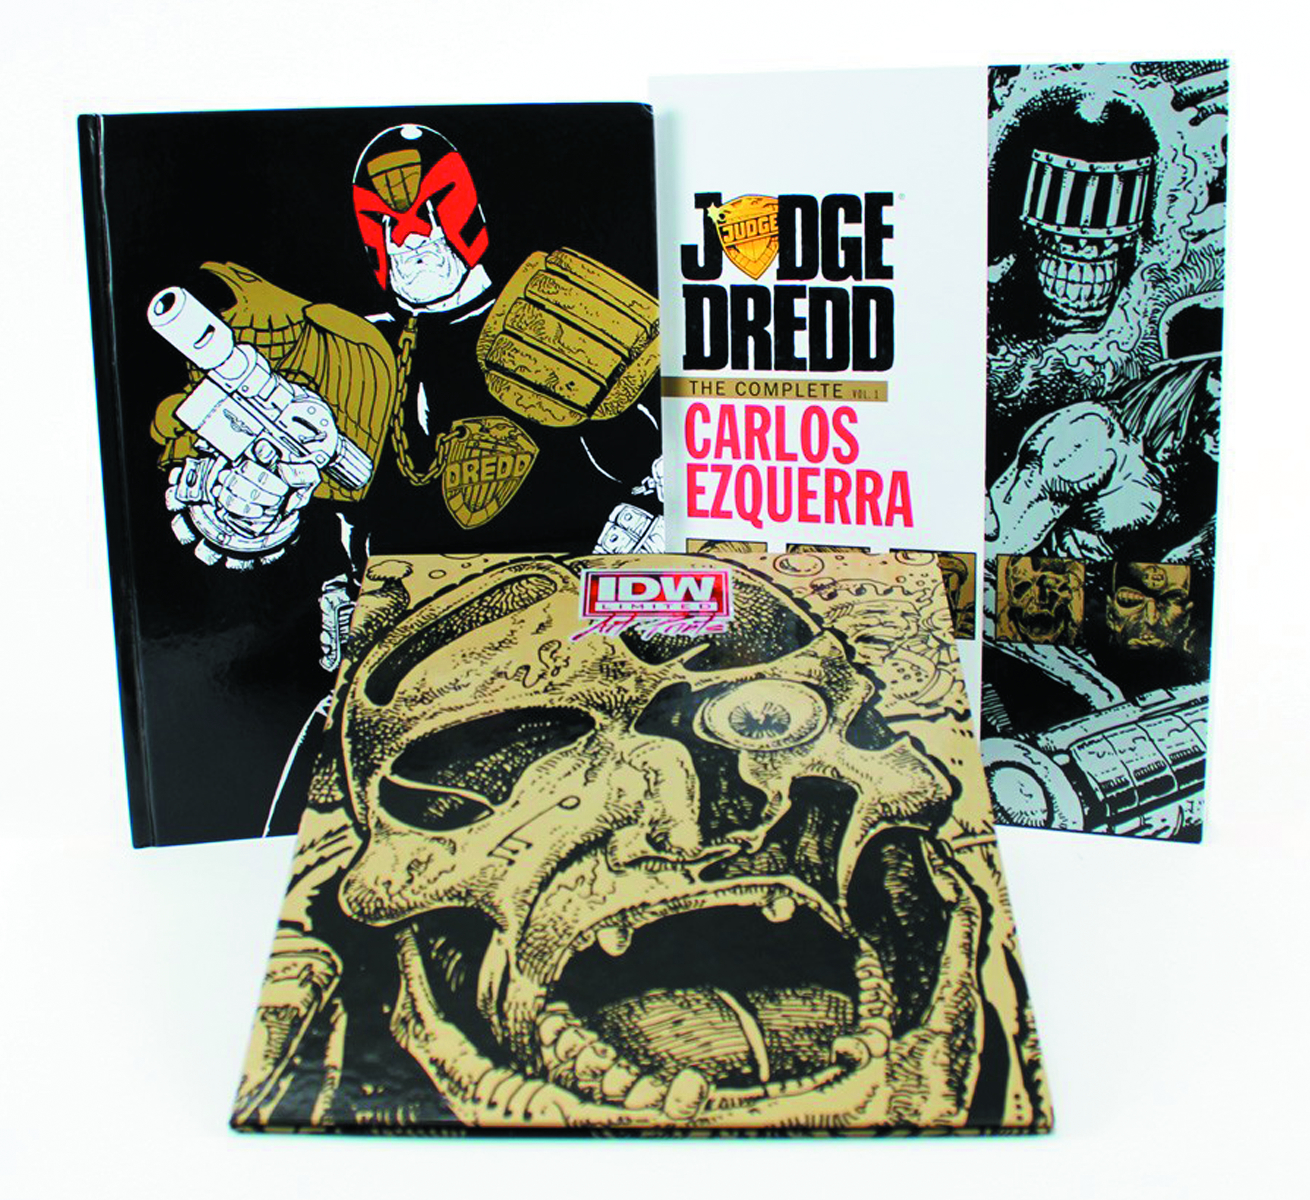 JUDGE DREDD COMPLETE CARLOS EZQUERRA HC VOL 01 RED LABEL ED